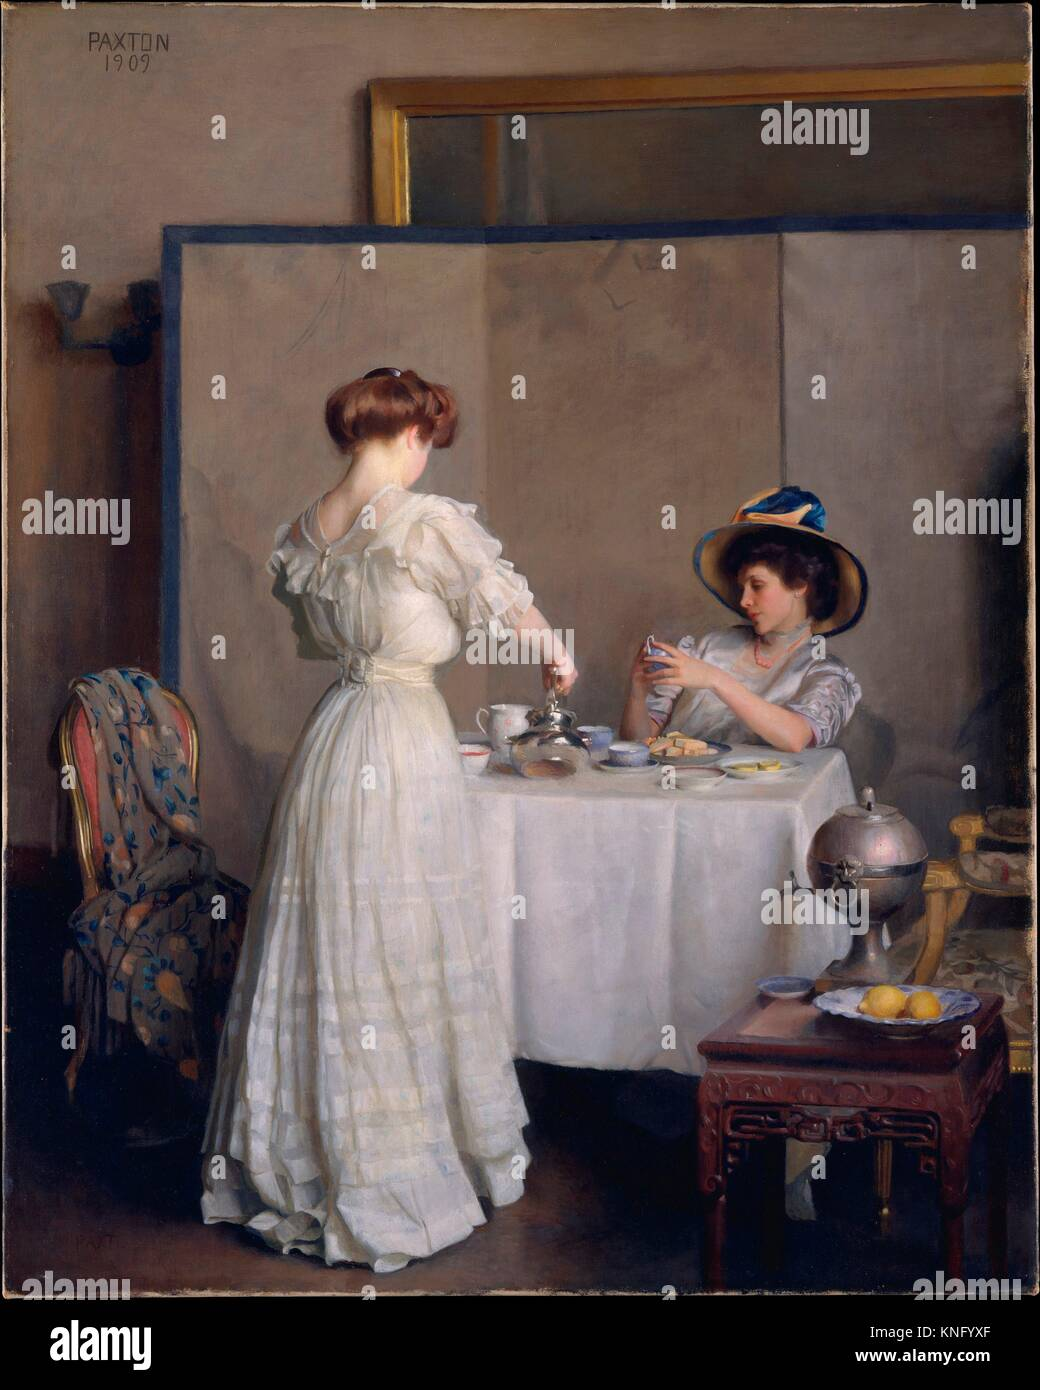 Le foglie di tè. Artista: William McGregor Paxton (American, Baltimore, Maryland 1869-1941 Boston, Massachusetts); Foto Stock